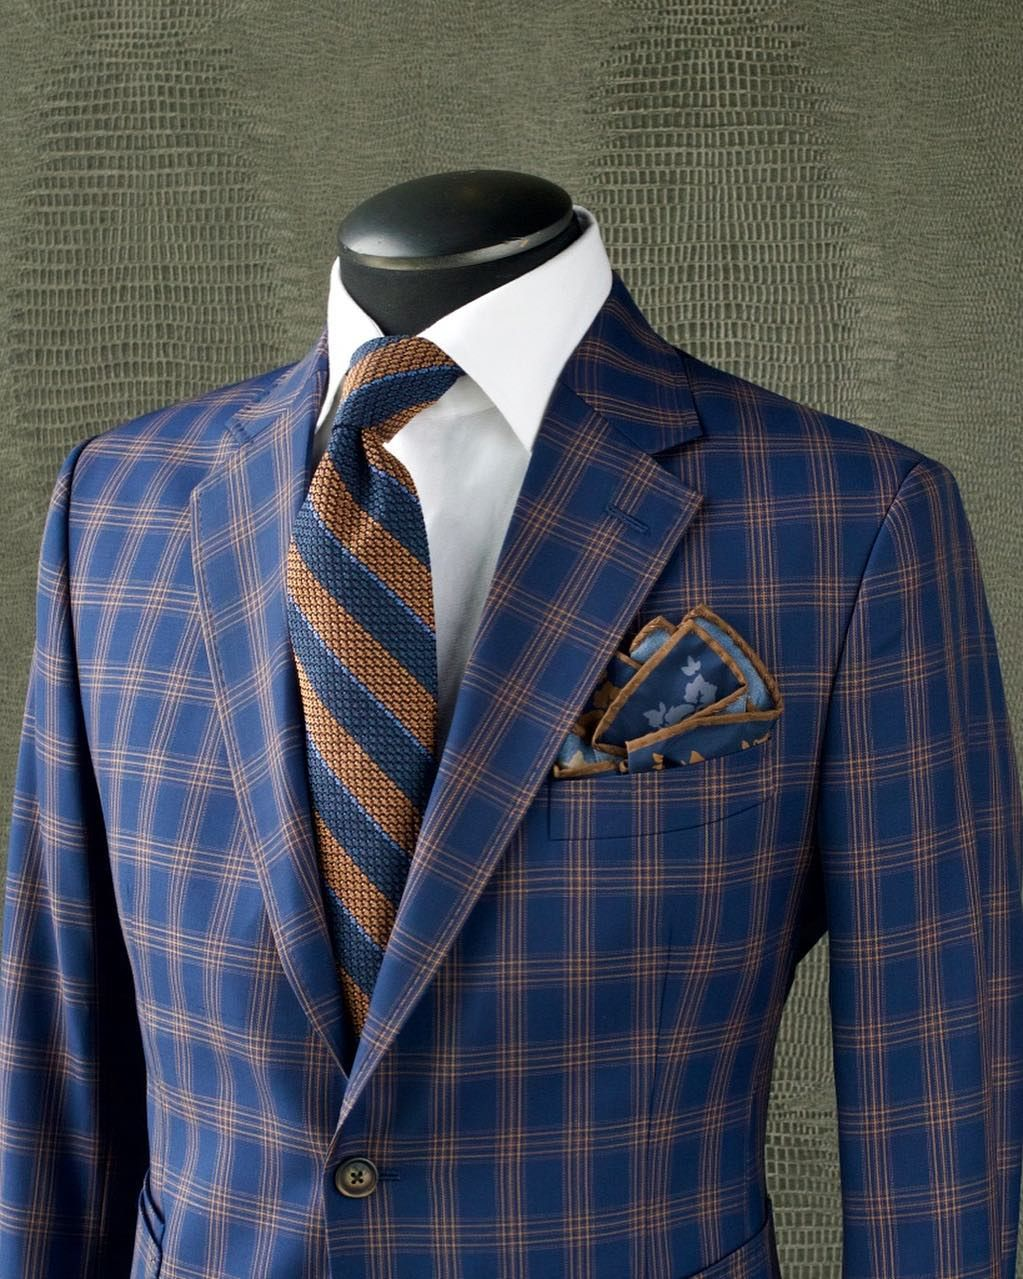 31532757e9060 CREEK CHECK Take a look at this fantastic KING & BAY Royal Blue & Creek  Brown Check Sport Jacket. With its eye catching & contrasting…